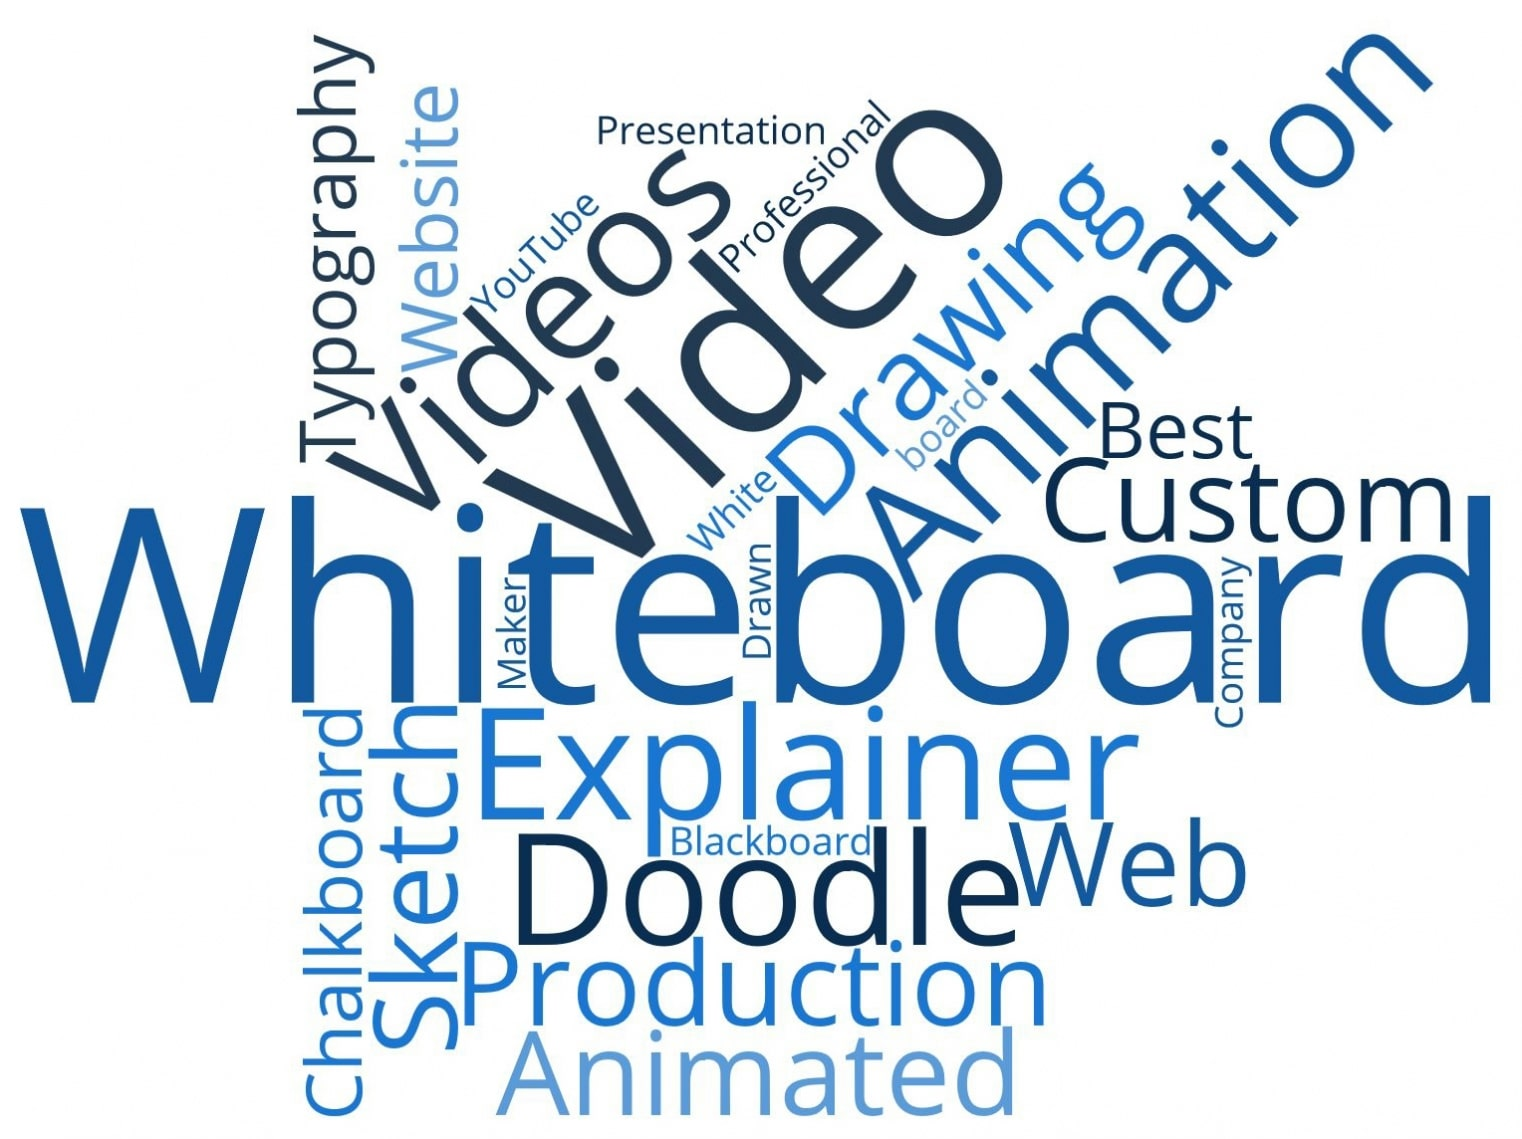 Whiteboard Video,Whiteboard Animation Video,Whiteboard Explainer Video,Best Explainer Videos,Best Sketch Videos,Custom Whiteboard Video